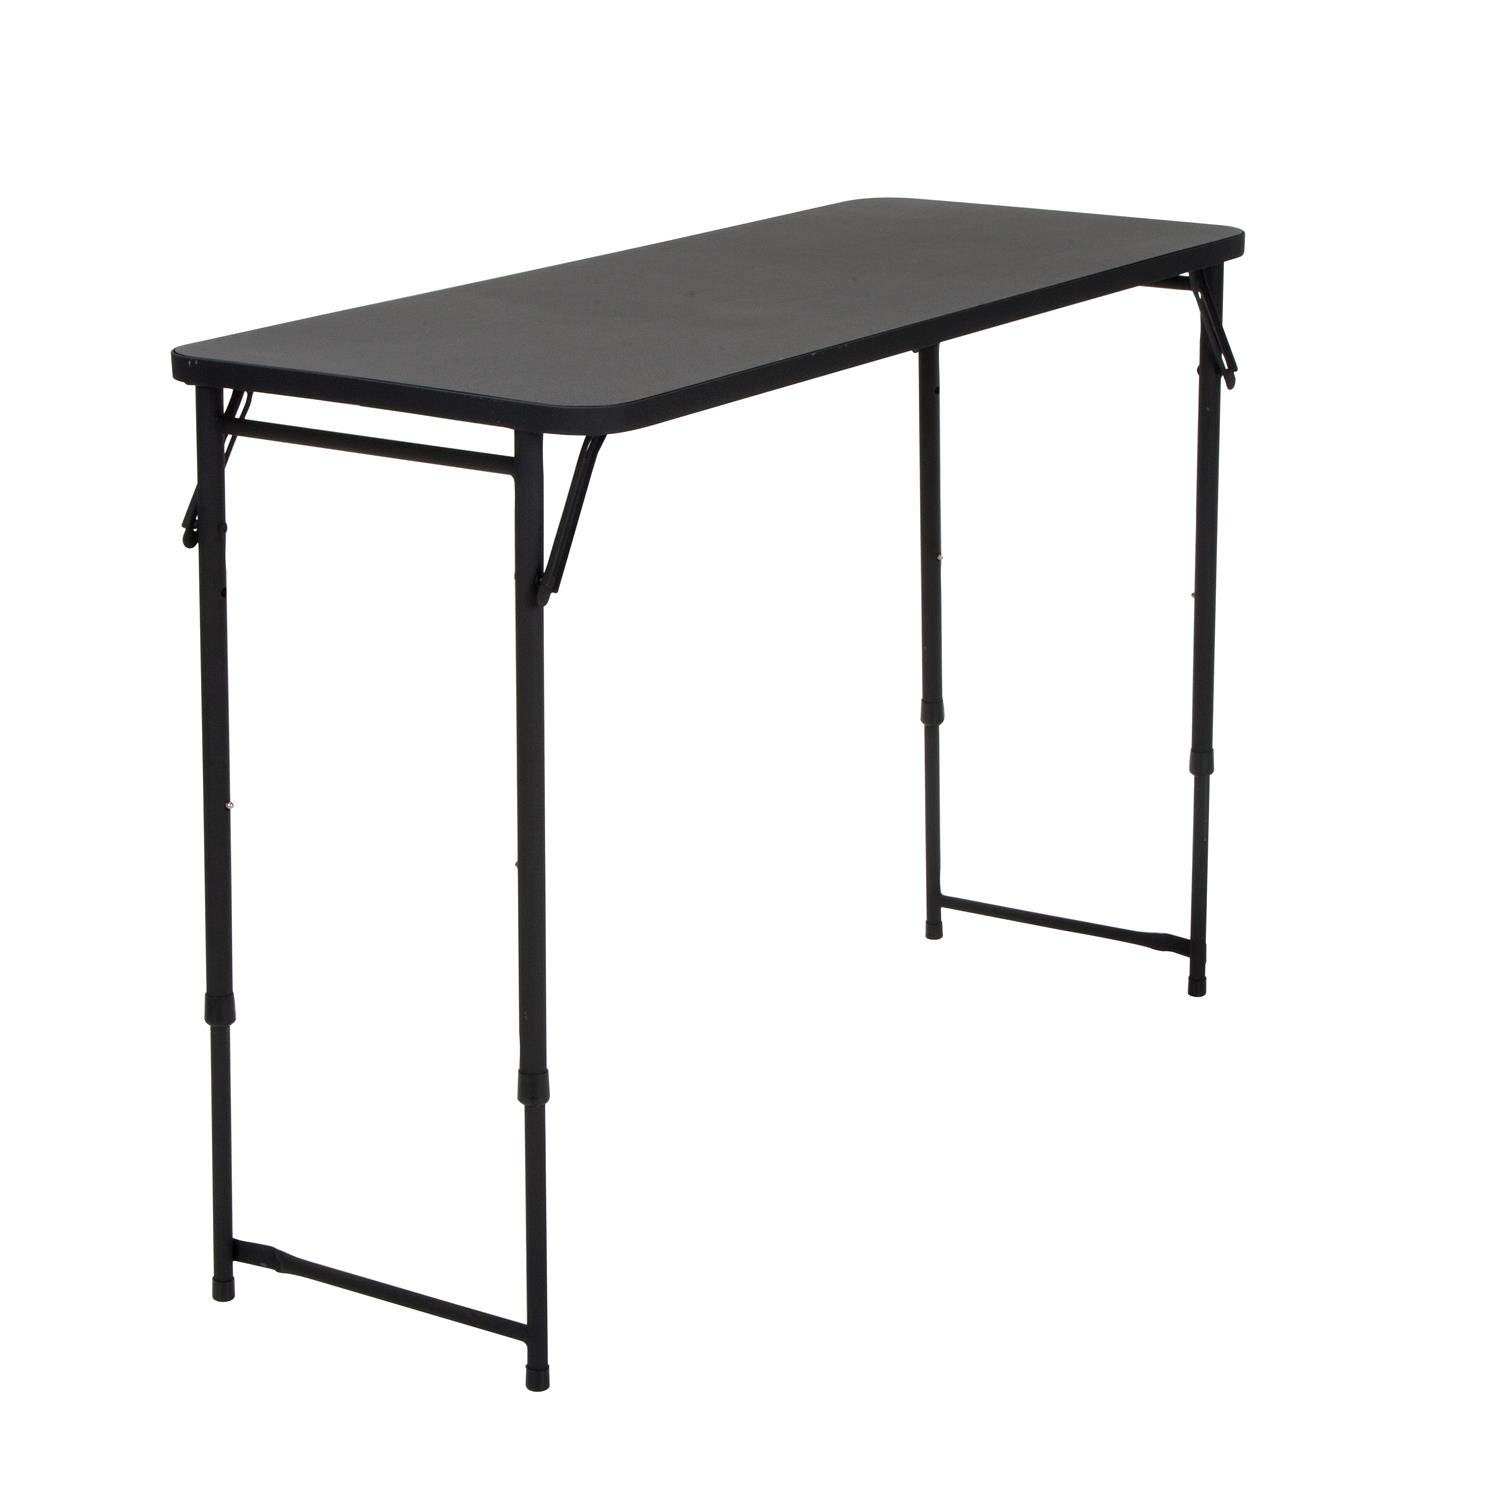 COSCO 20'' x 48'' Adjustable Height PVC Top Table, Black (Renewed) by Cosco Products